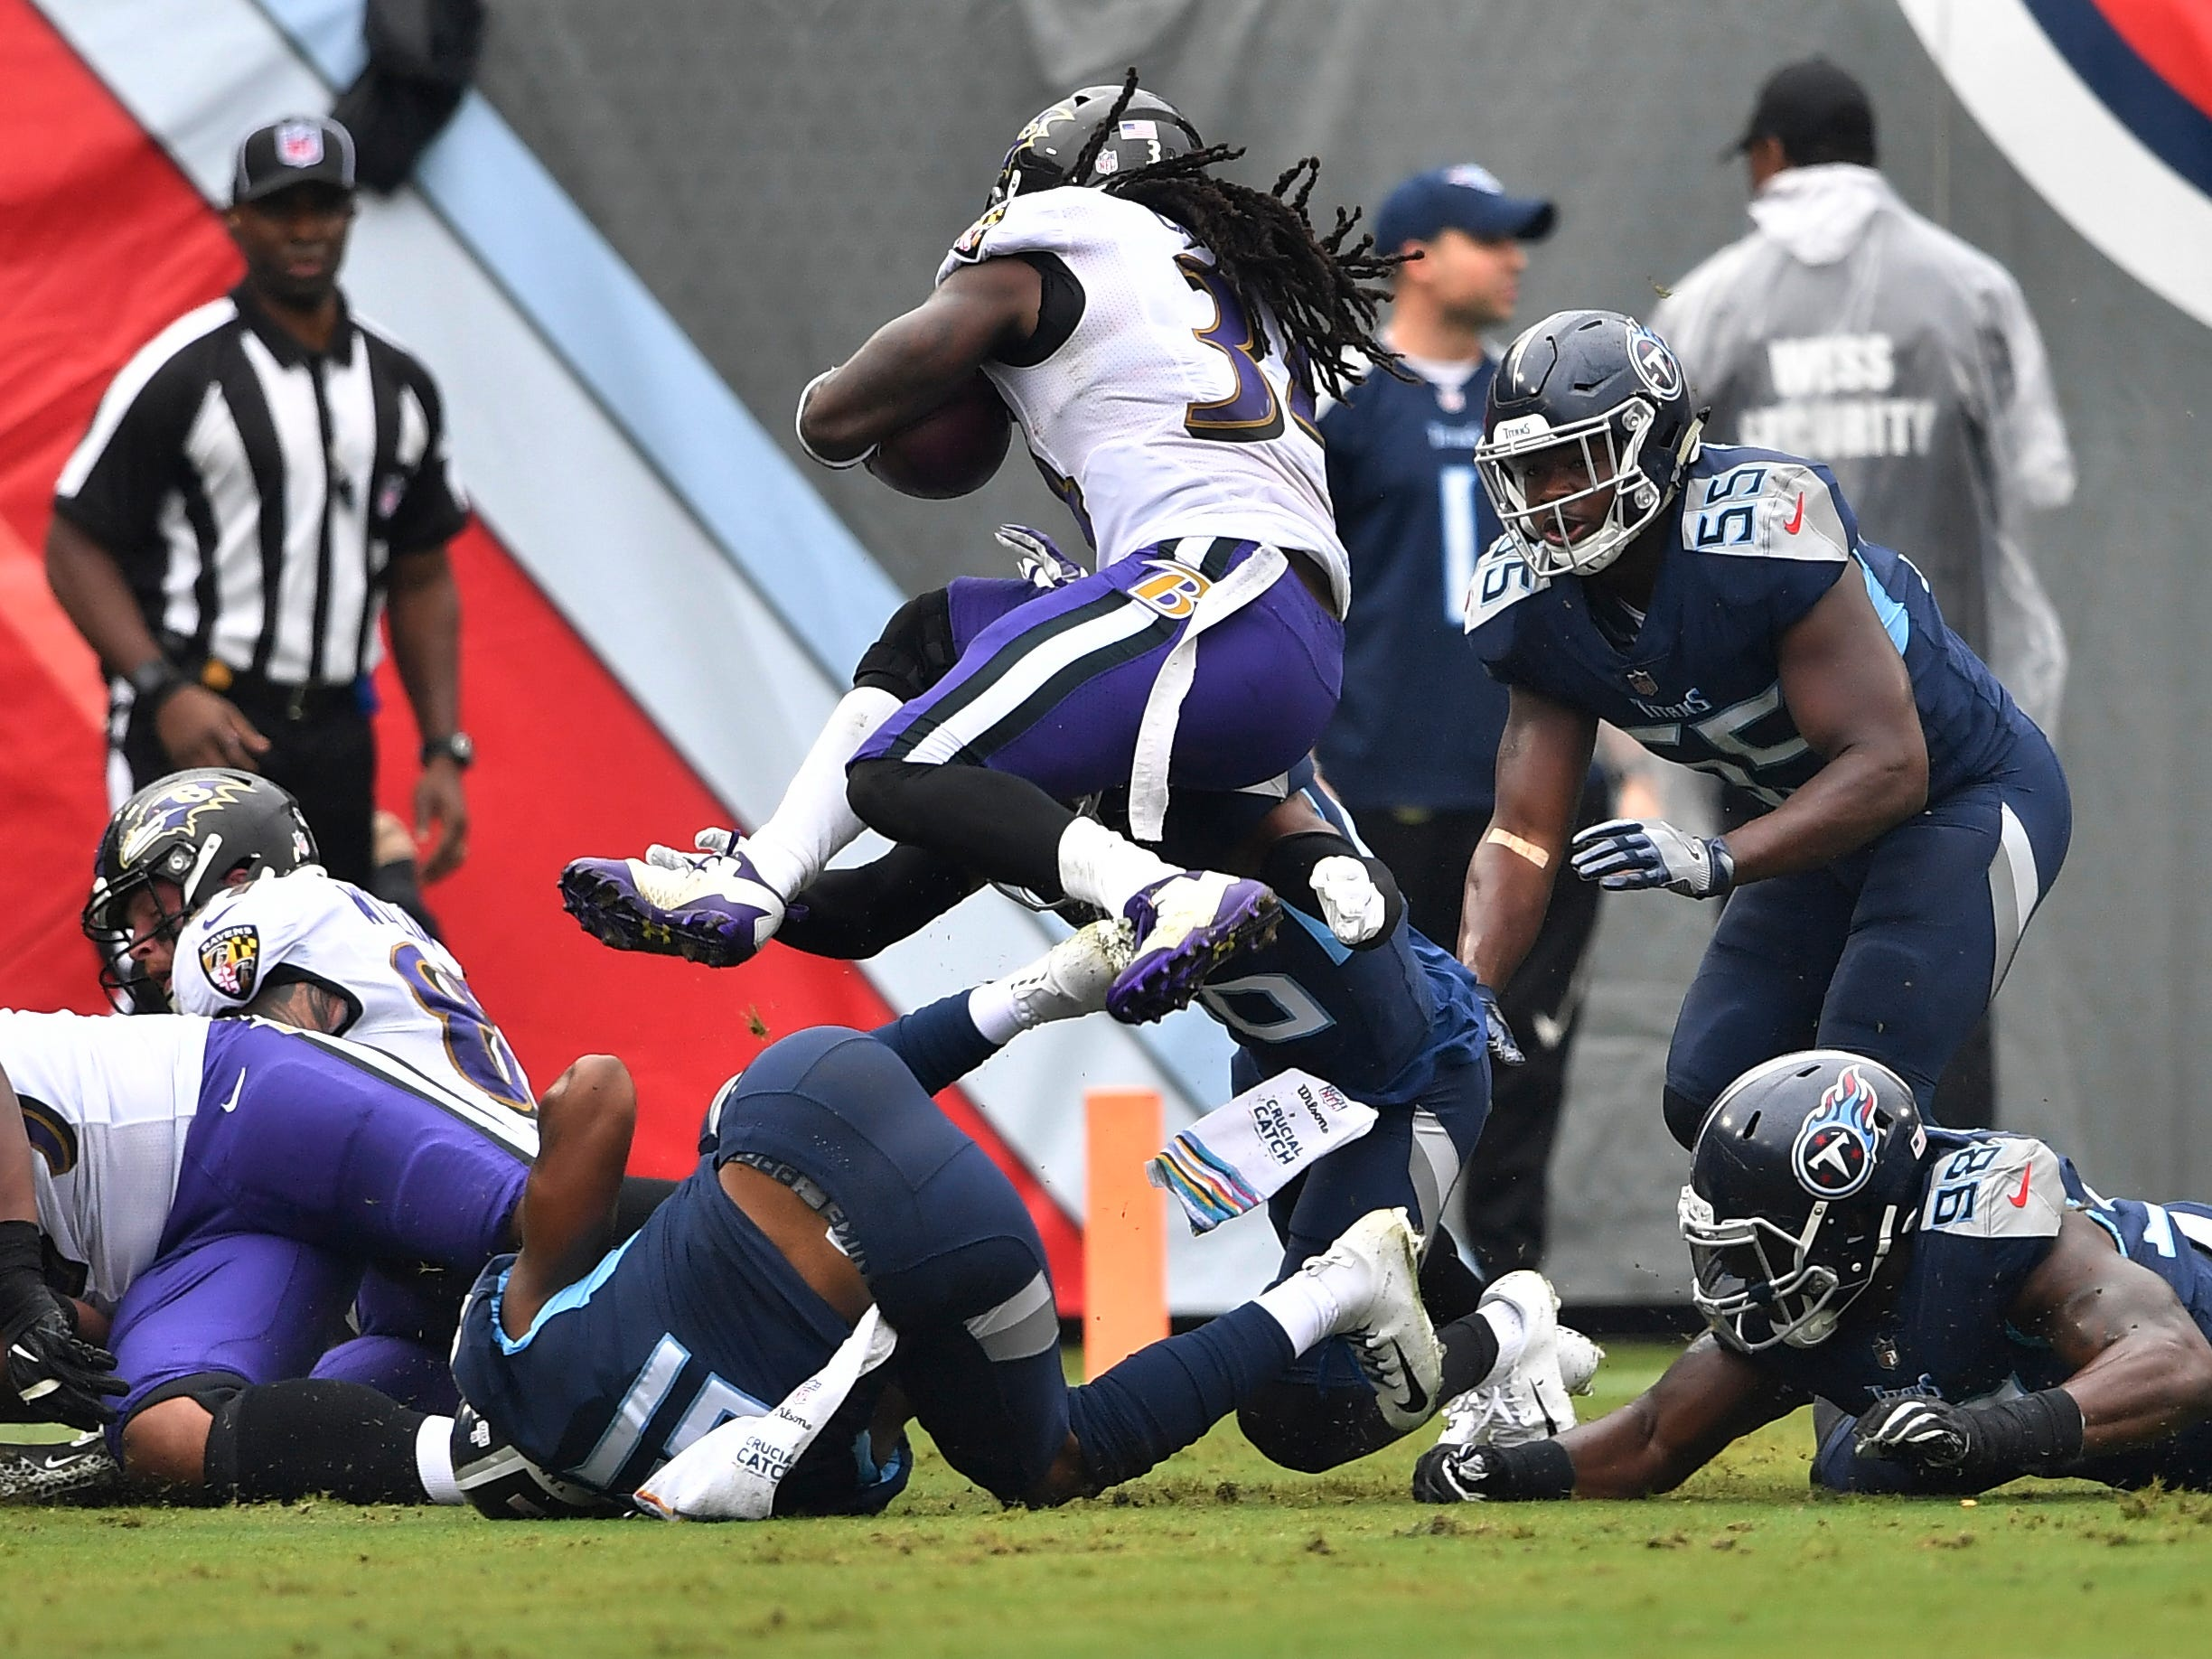 Ravens running back Alex Collins (34) goes up to gain yards in the first quarter at Nissan Stadium Sunday, Oct. 14, 2018, in Nashville, Tenn.